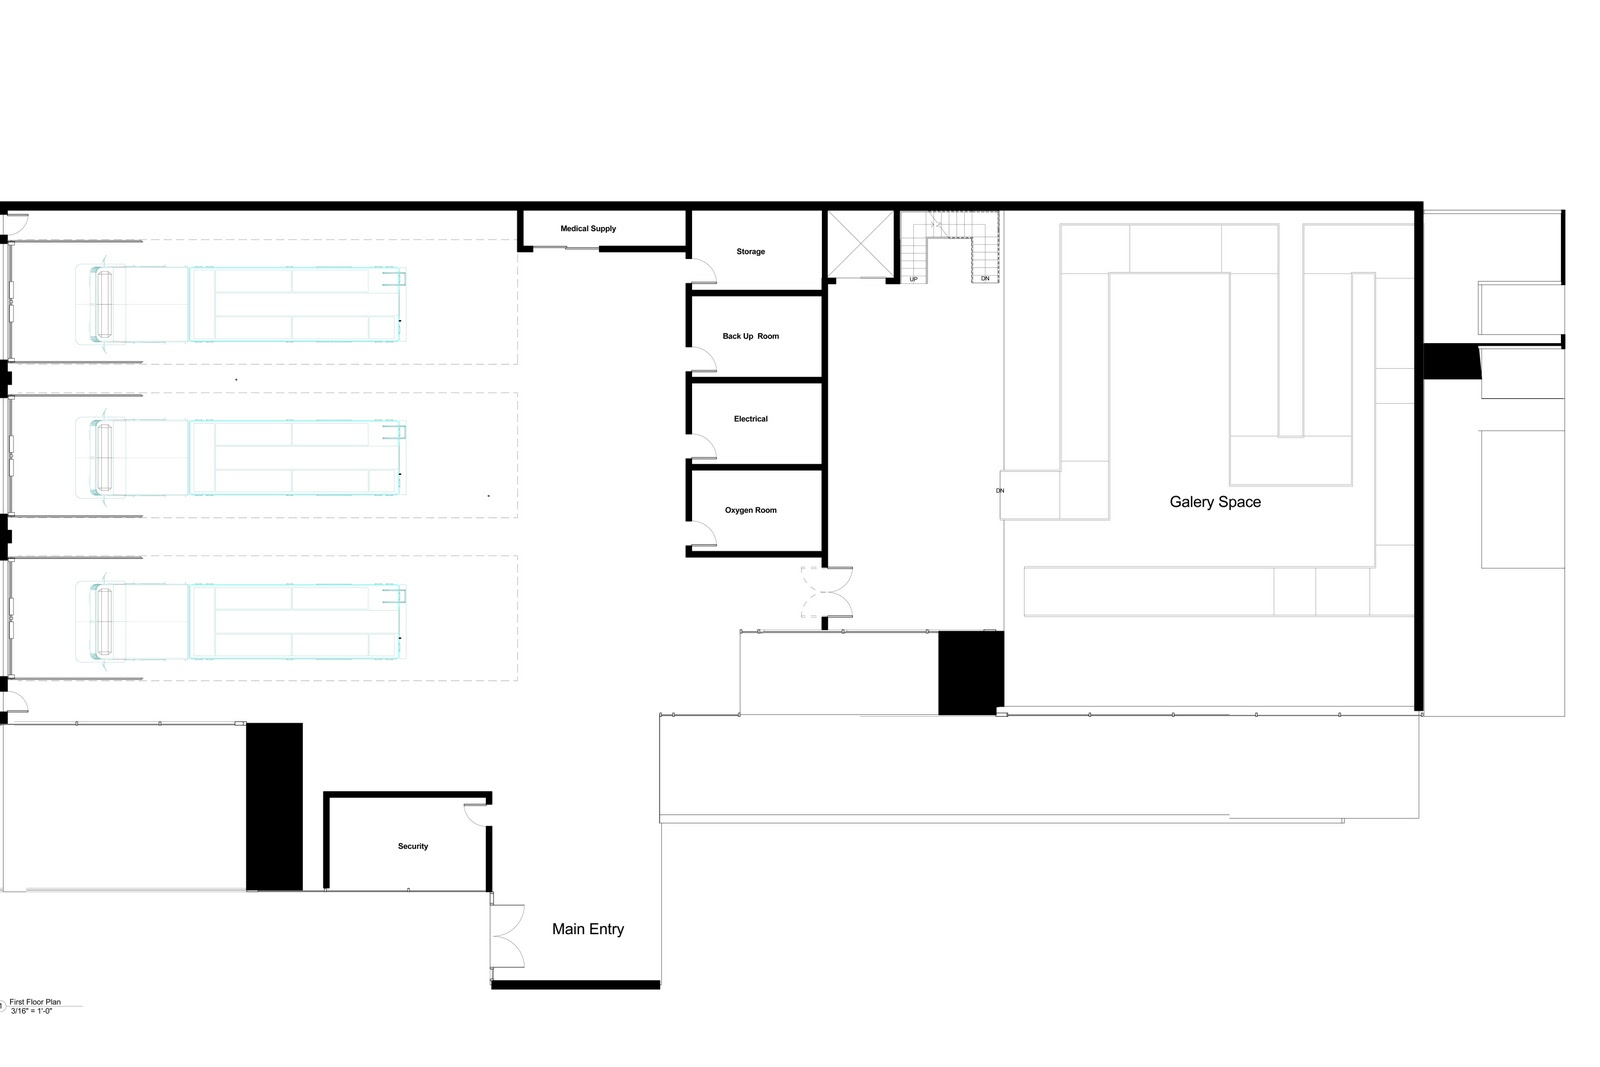 Arch 3611 theoretical design fire station floor plans proposed for Fire station floor plans design